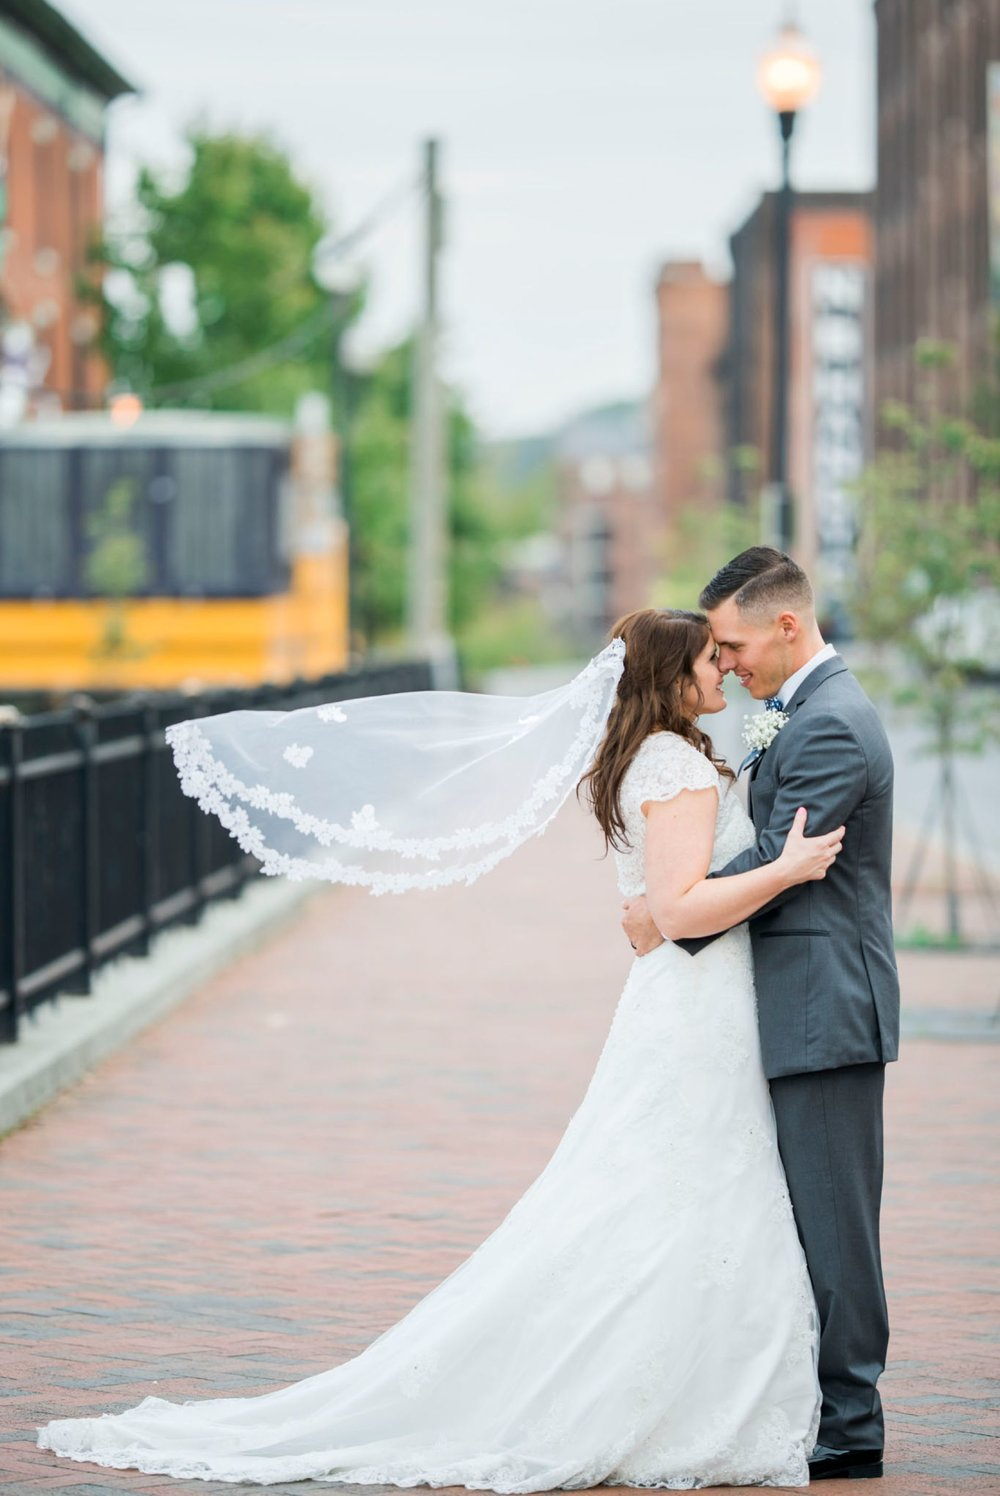 Trescaon8th_DowntownLynchburg_Virginiaweddingphotographer 72.jpg